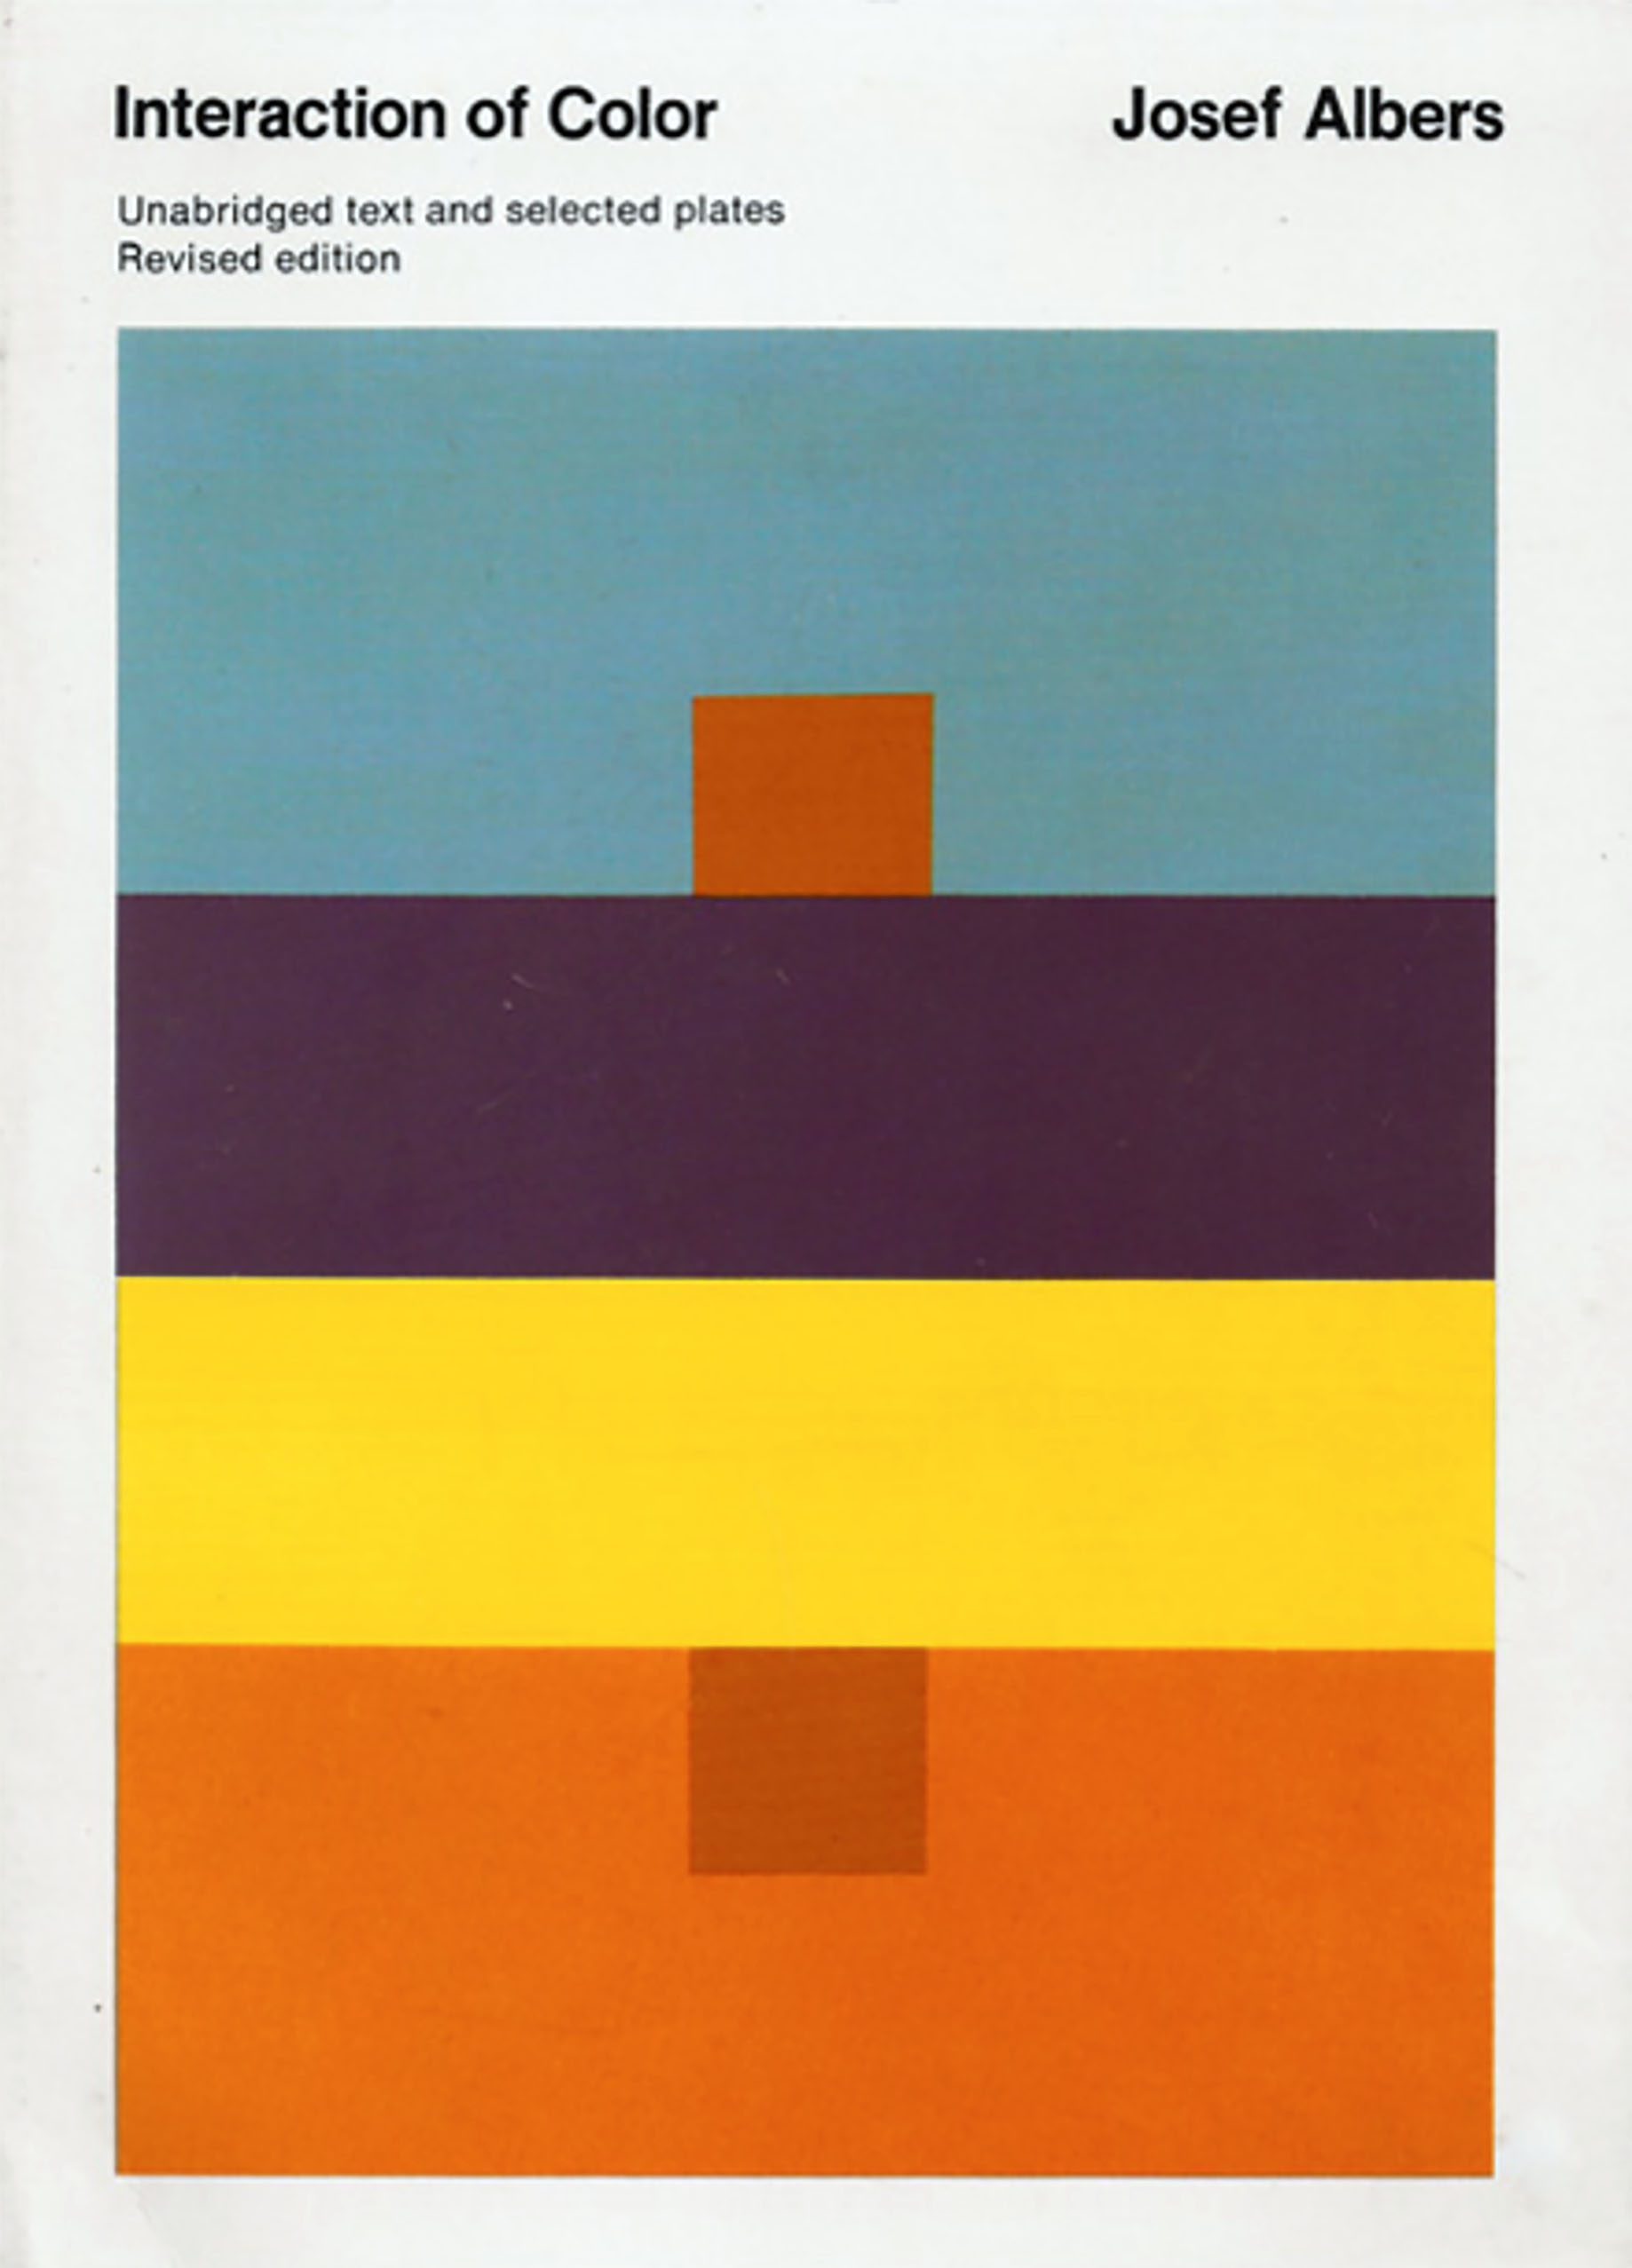 Josef Albers 'Interaction of Colour' www.louisapenfold.com